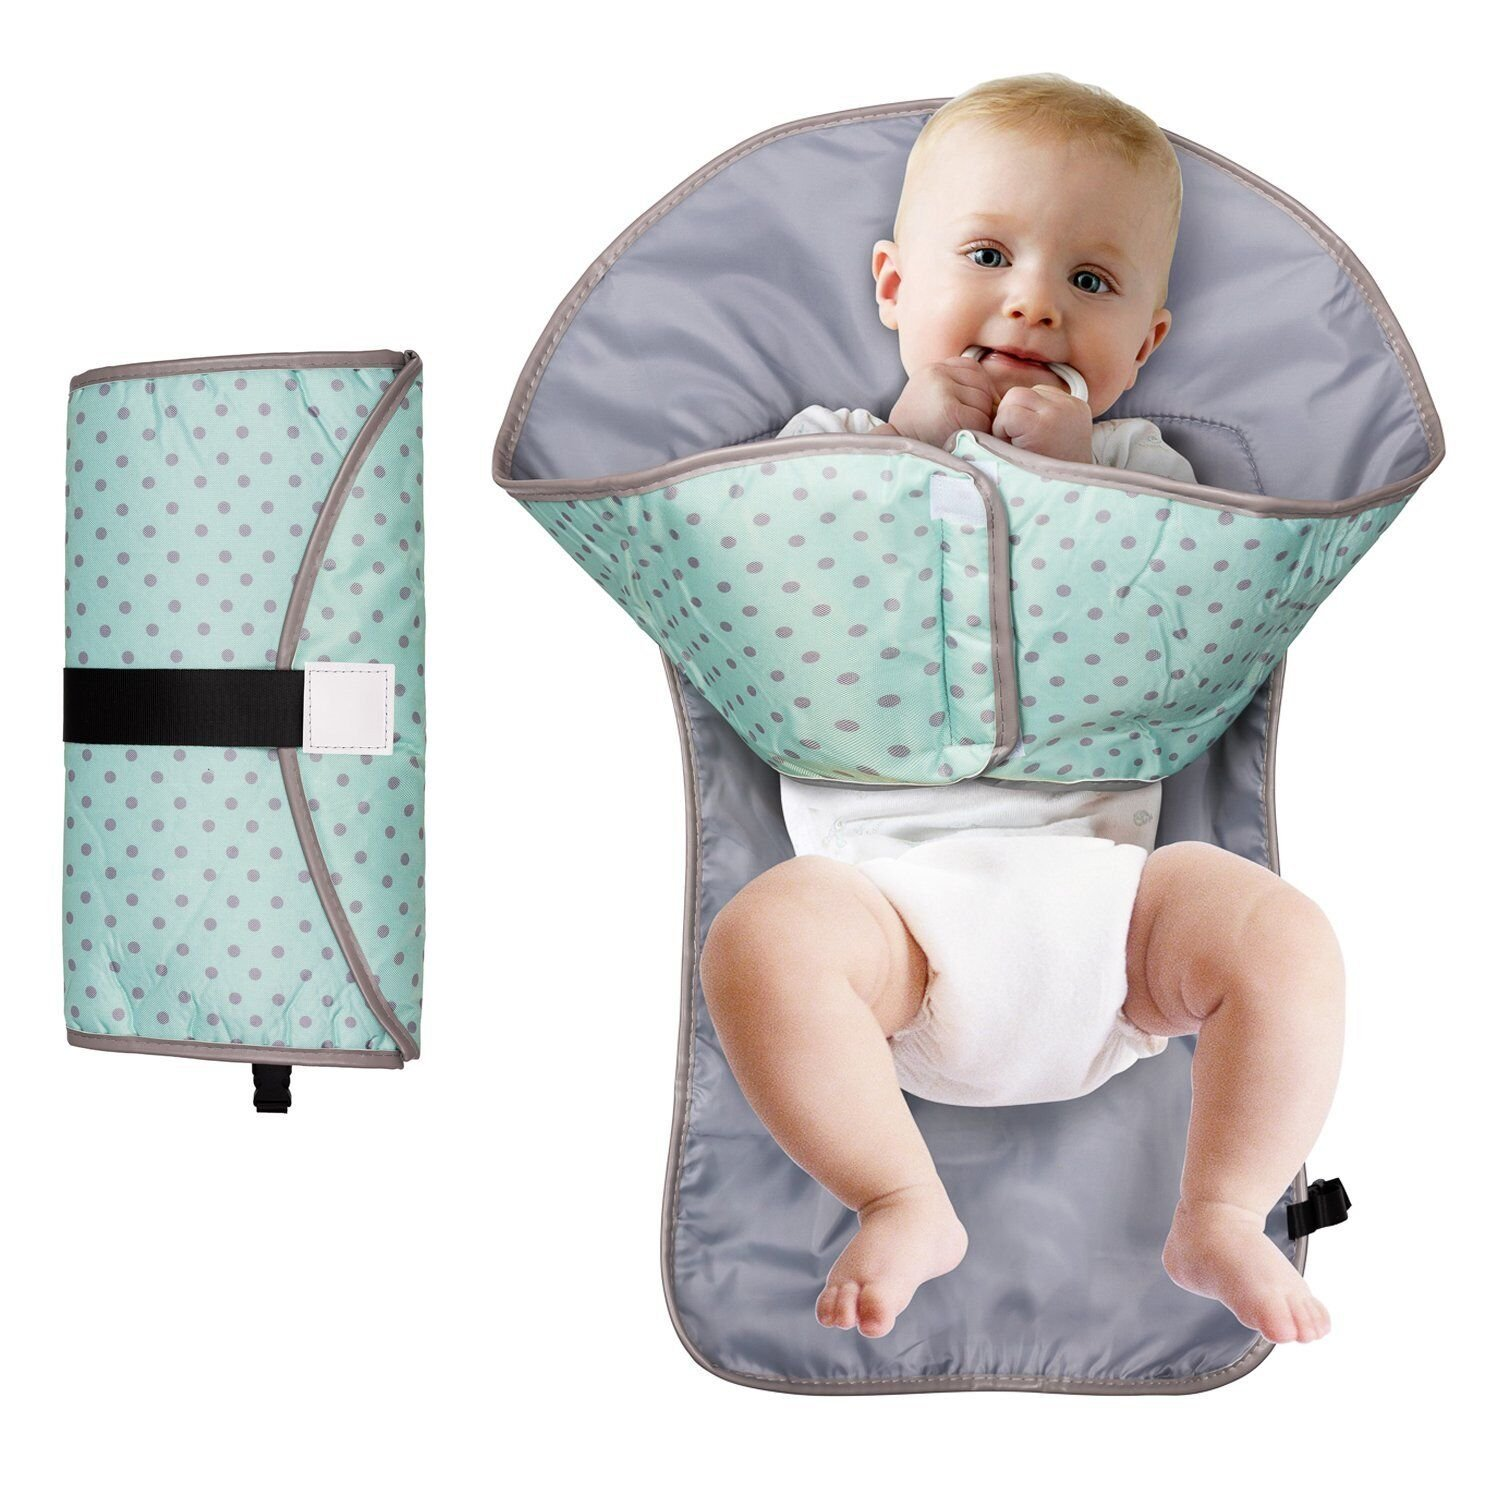 Baby Diaper Changing Pad 3-in-1 Changing Diaper Portable Clean Hands Changing Pad